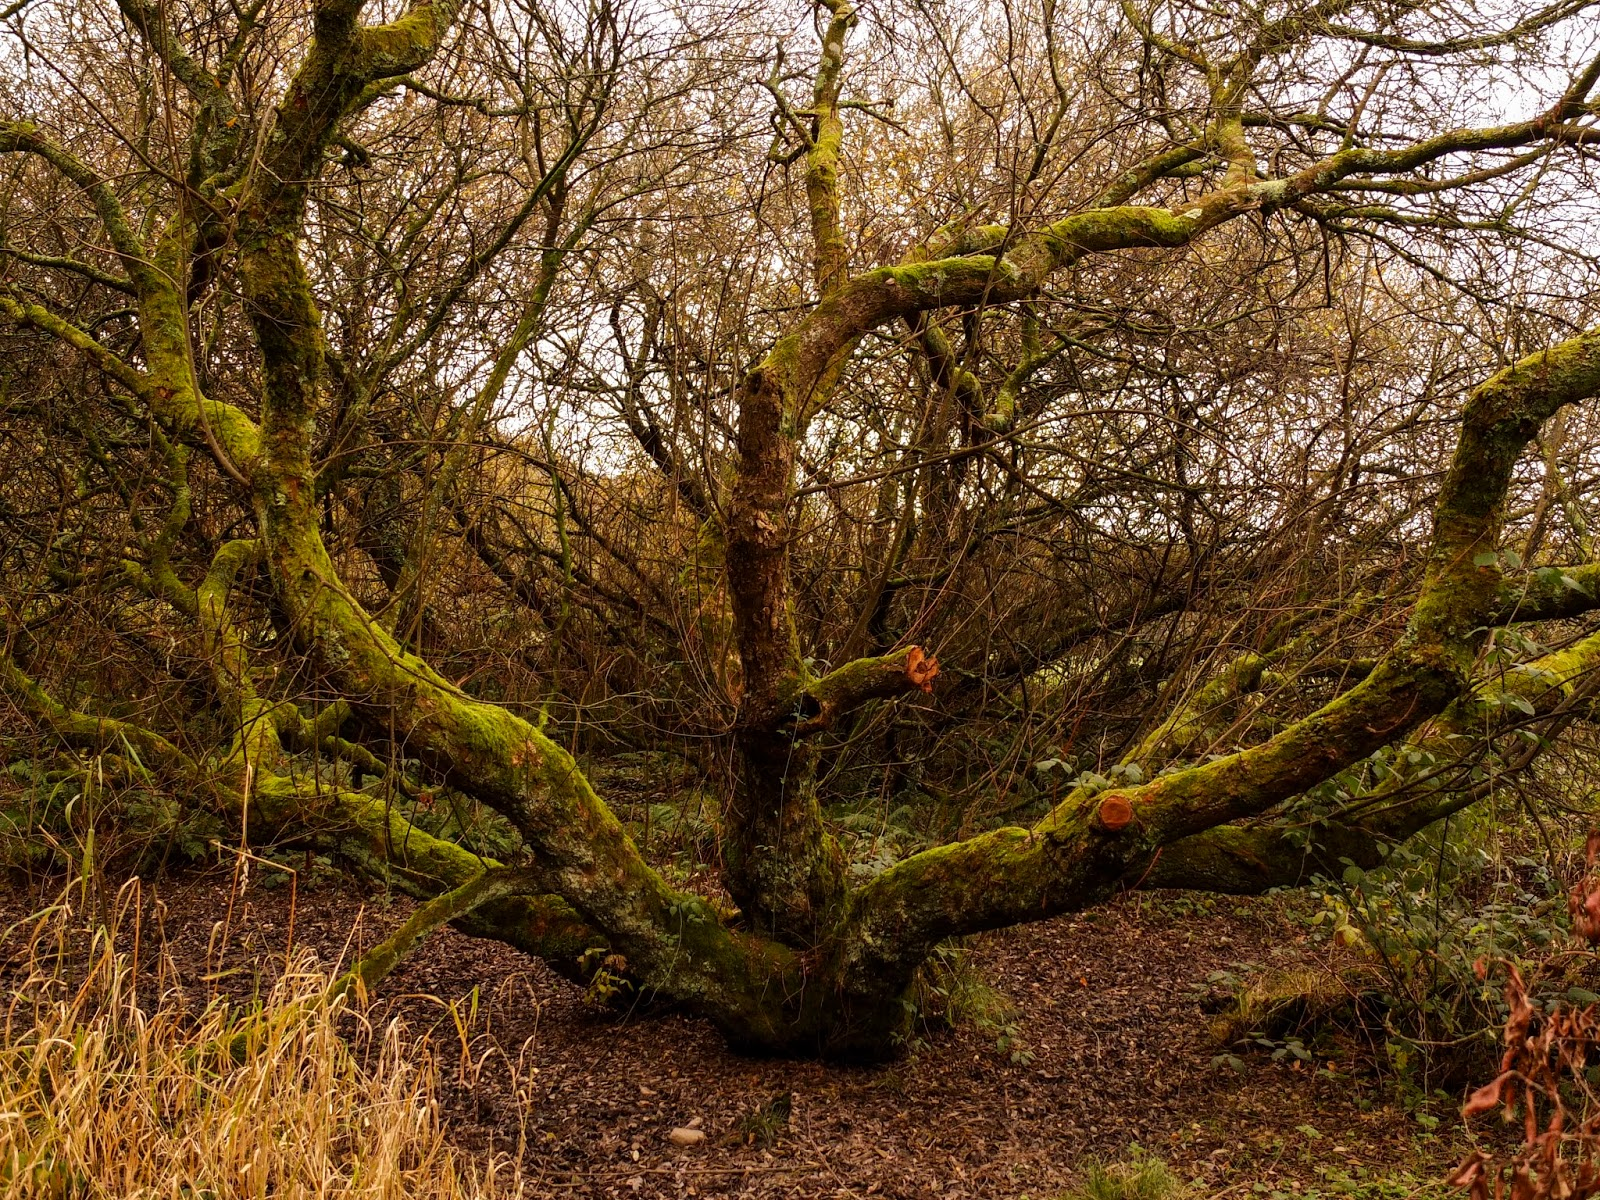 An ancient and gnarly looking tree in Ballicolling Regional Park.